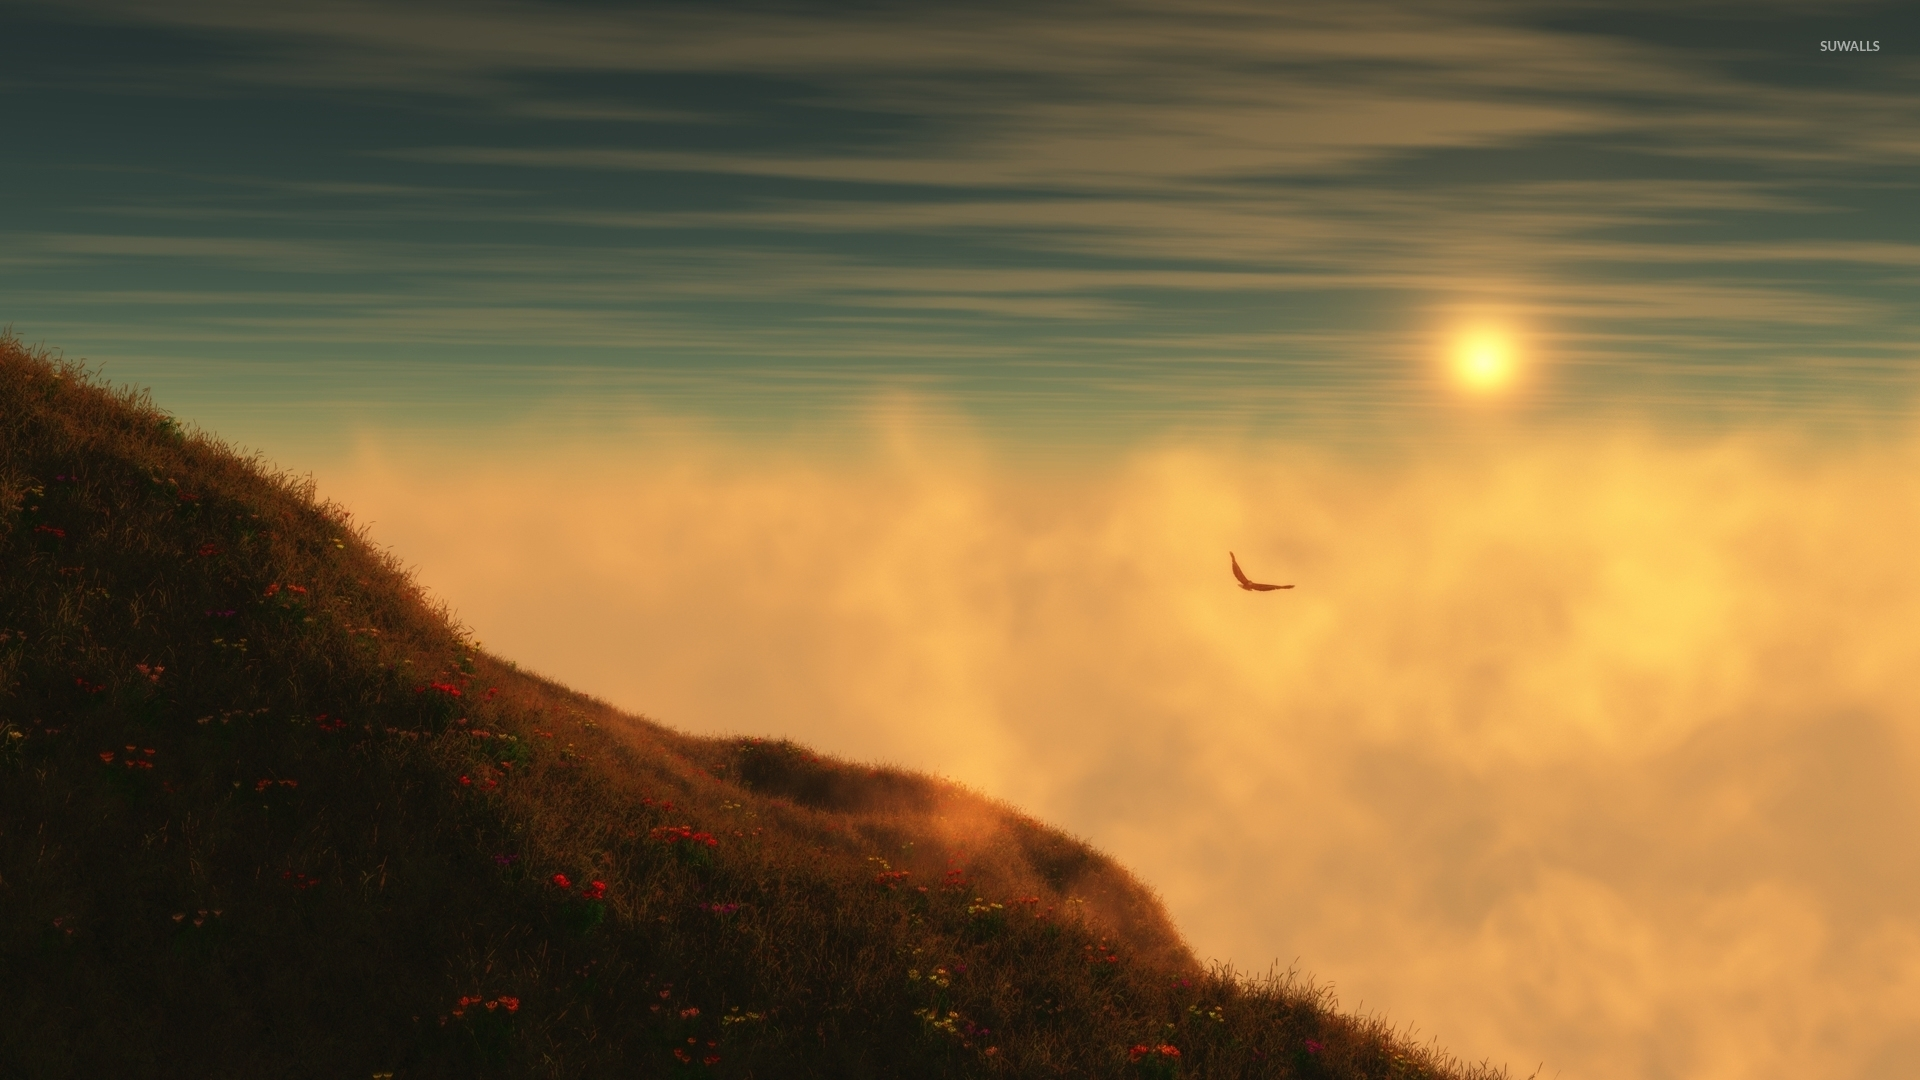 Windows 10 Wallpapers Hd Fall Bird Flying In The Fog Wallpaper Nature Wallpapers 36257